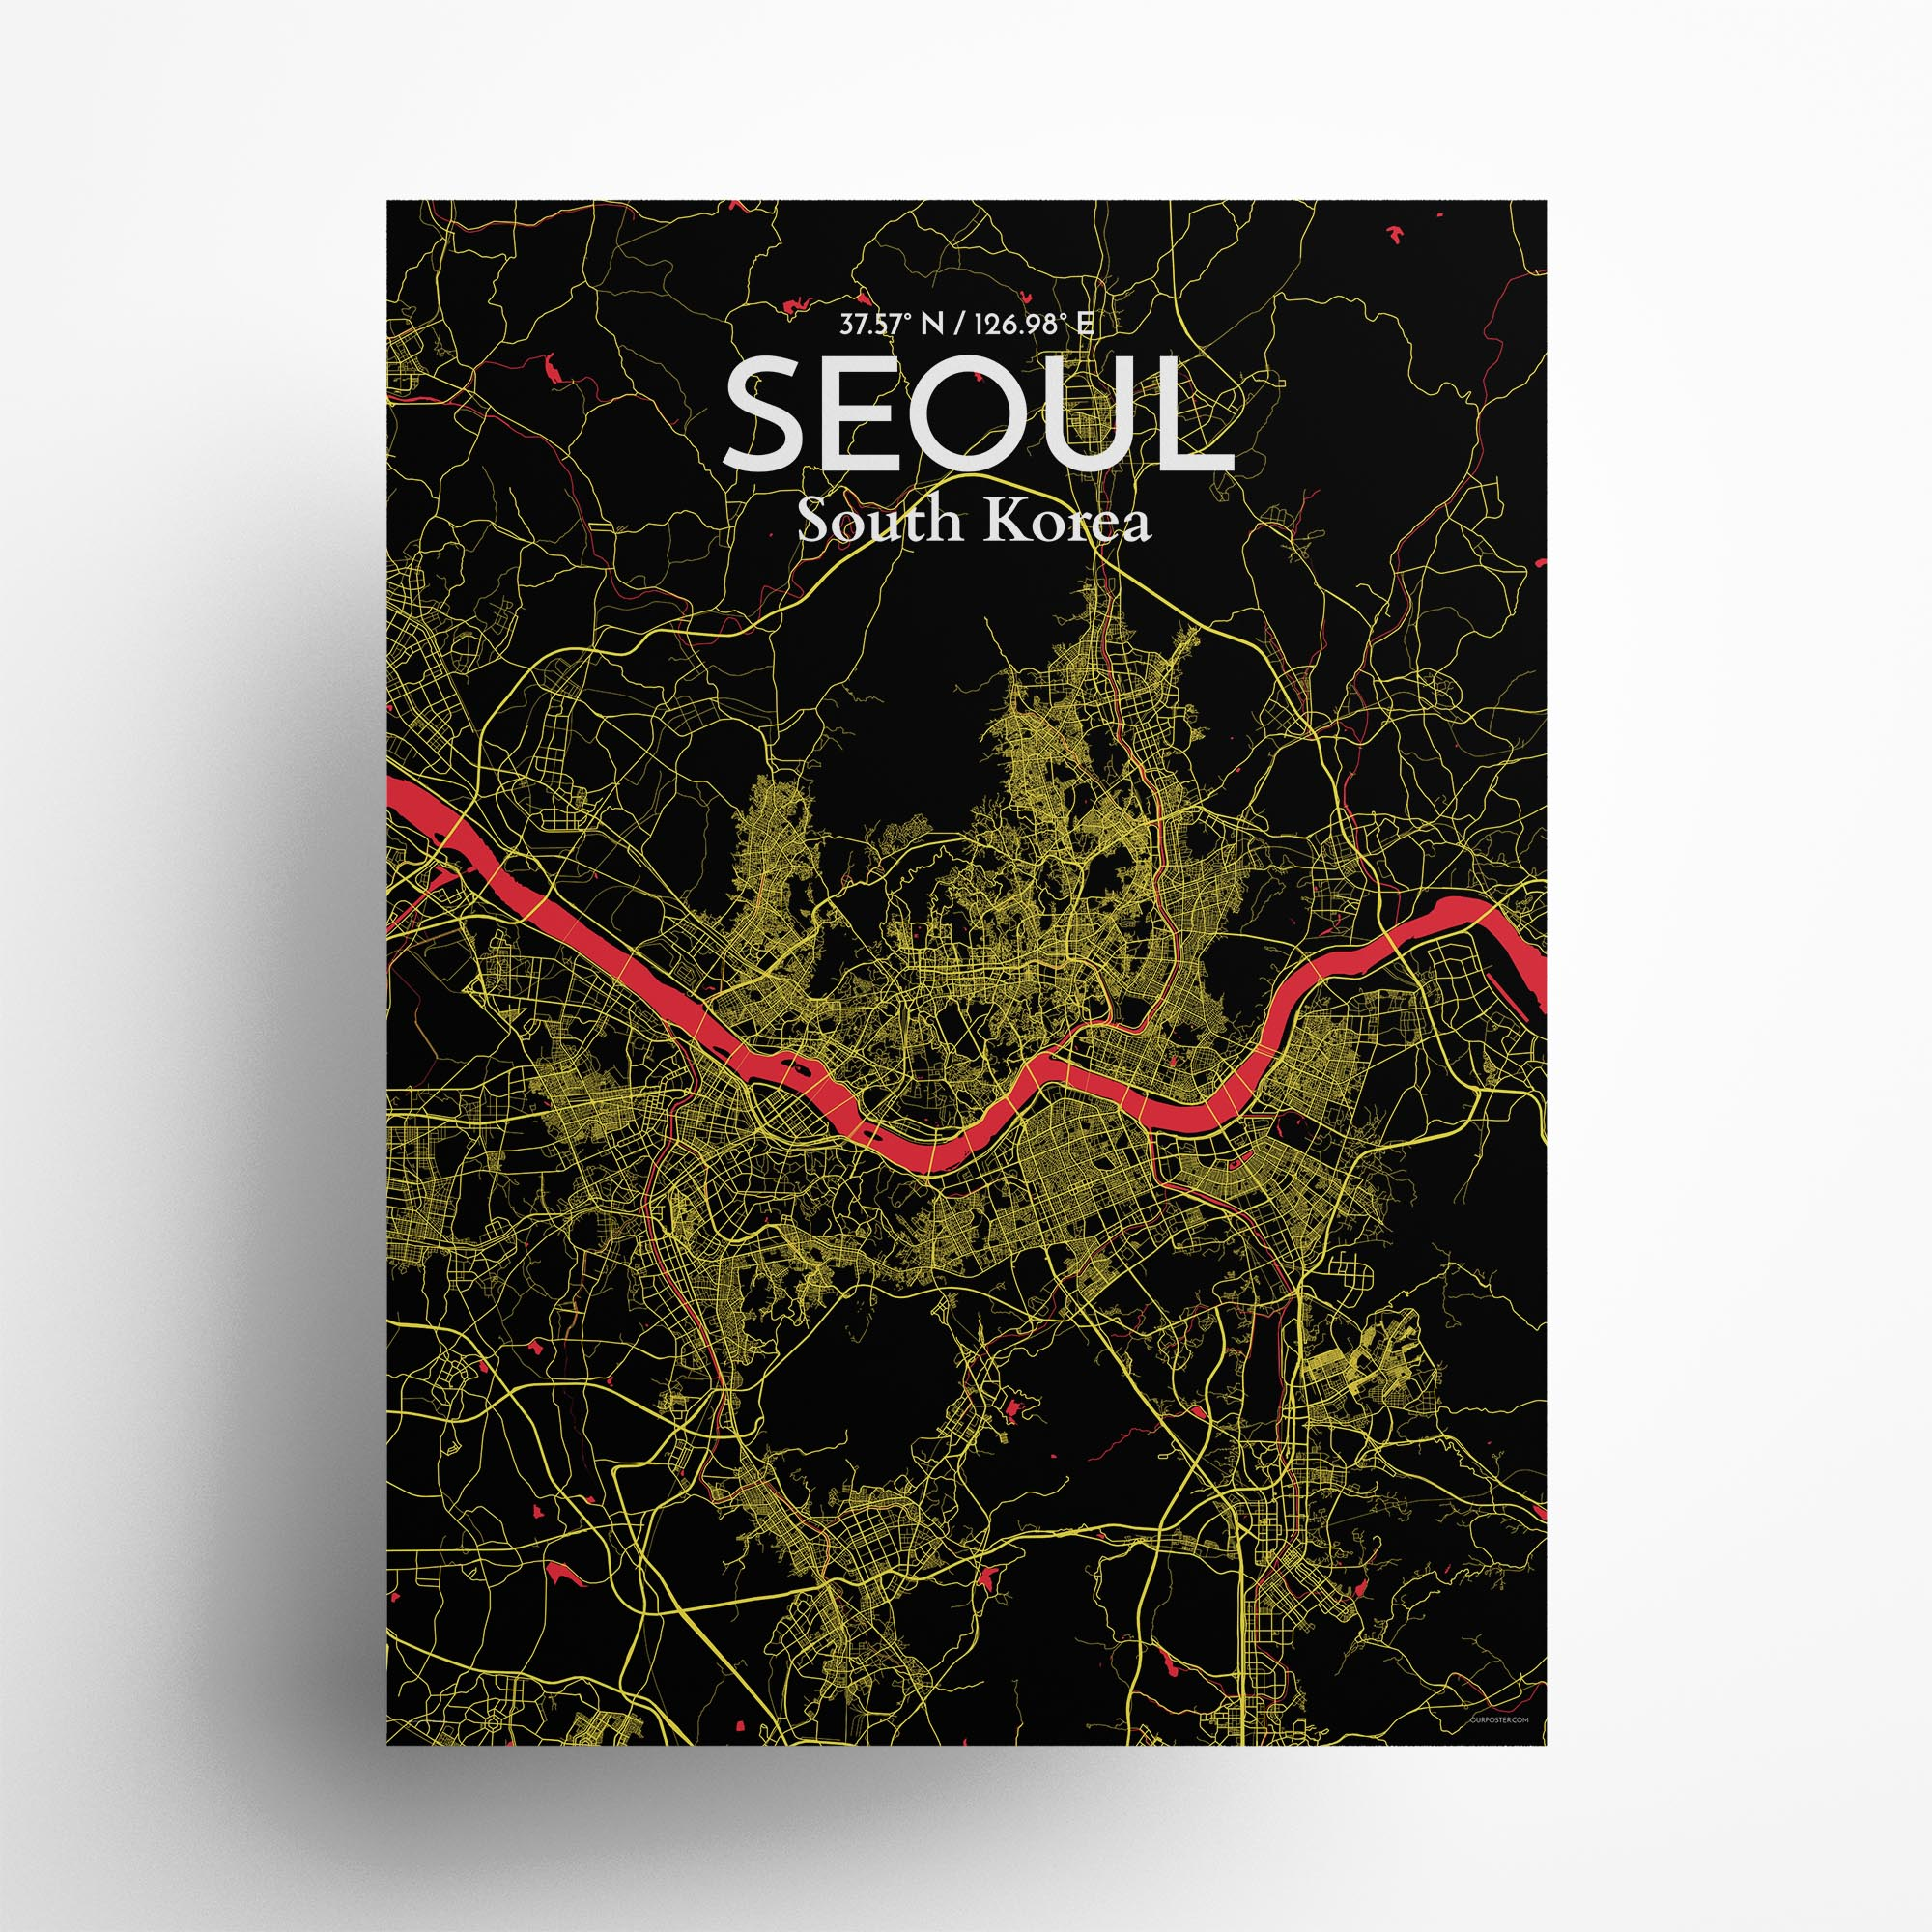 "Seoul city map poster in Contrast of size 18"" x 24"""